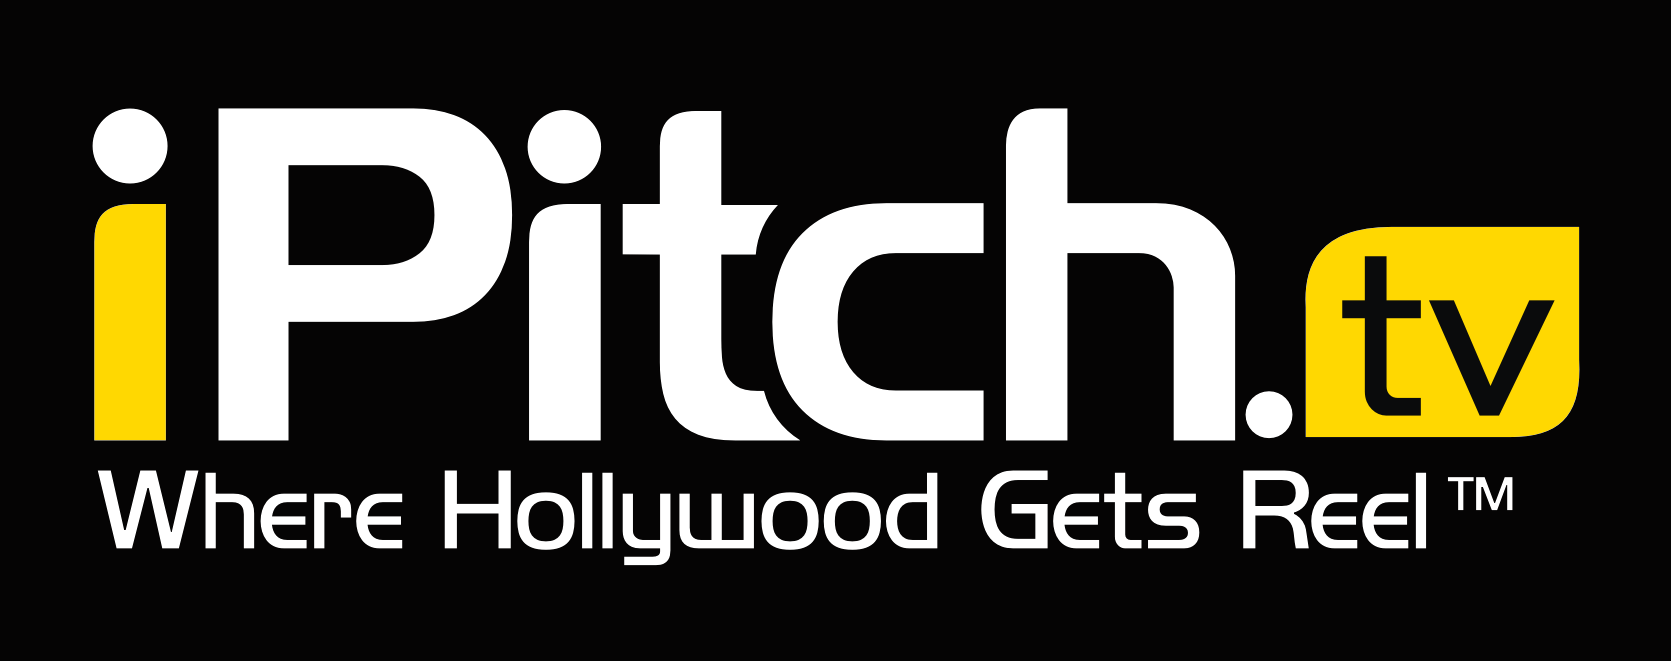 """""""Looking for a way to pitch your idea for a television show or movie?iPITCH.TV offers a next generation platform for creators of original pitches for TV, Film & Digital Media to connect directly with Hollywood Producers and Studio Executives and gives creators industry pro advice on how to pitch a television show or feature film. Pitch your idea for a Movie, Screenplay, Television Show, Short Film, New Media Project and more."""""""